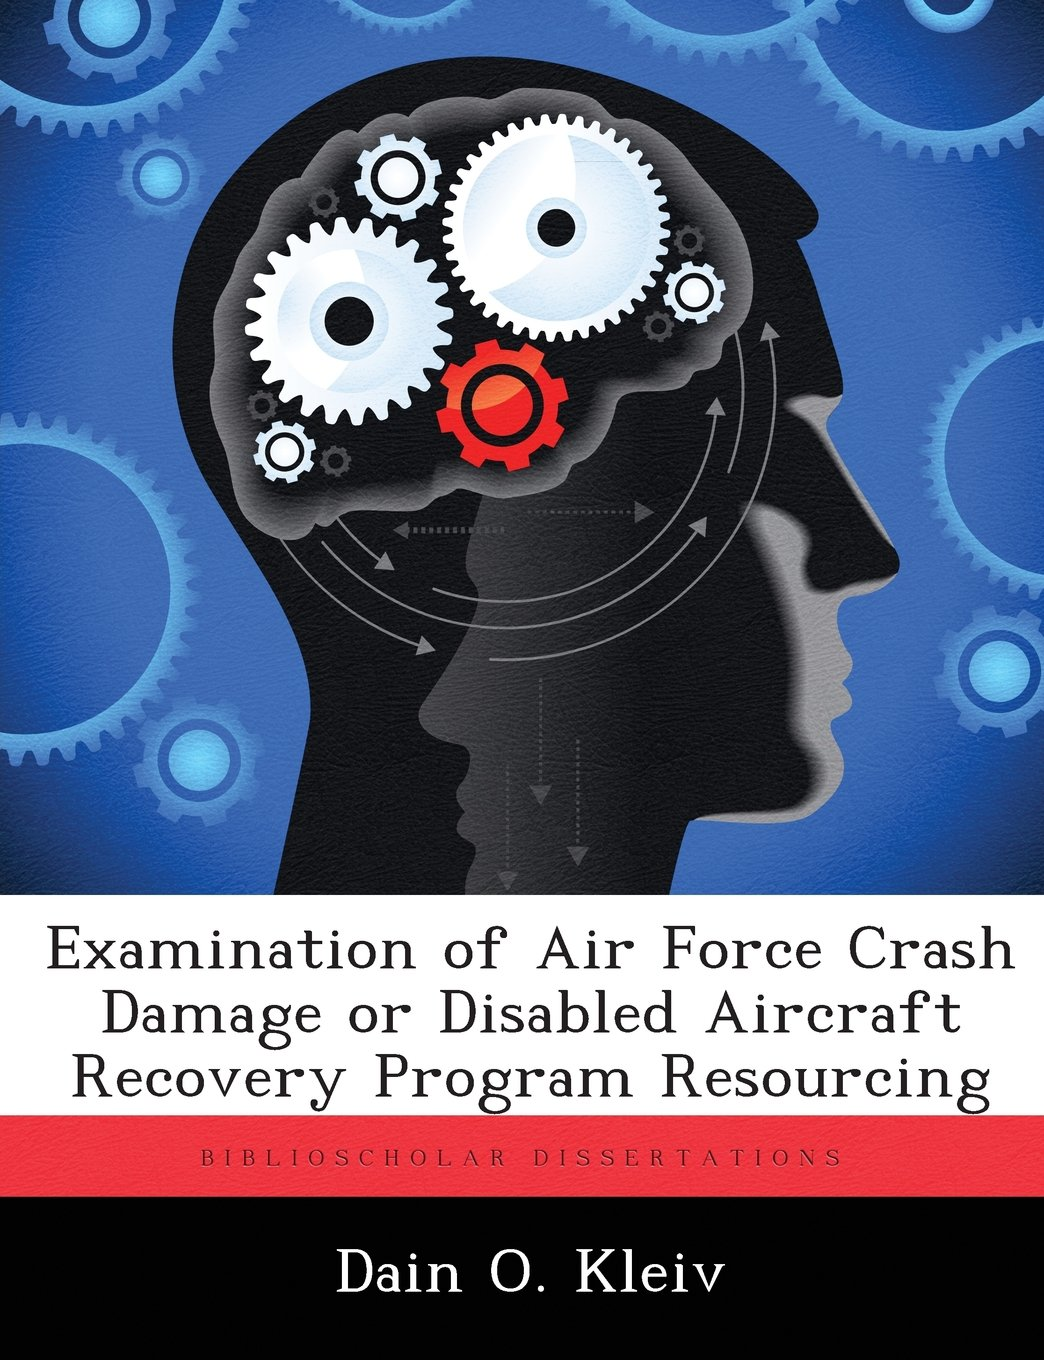 Examination of Air Force Crash Damage or Disabled Aircraft Recovery Program Resourcing PDF